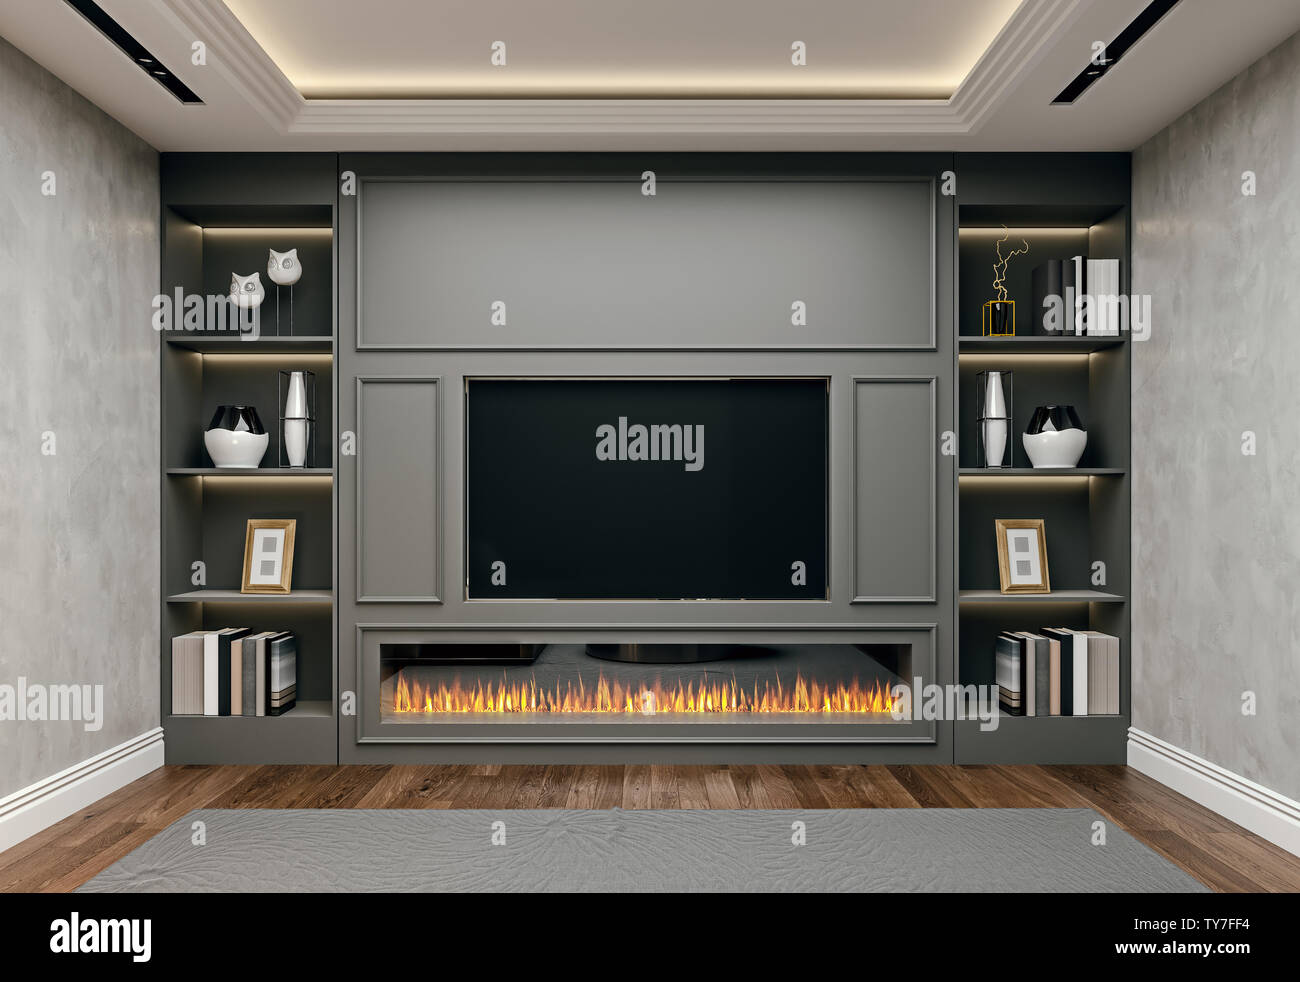 Modern Interior Design Of Living Room In Basement Close Up View Of Tv Wall With Book Shelves Stucco Plaster Wooden Flooring 3d Rendering Stock Photo Alamy